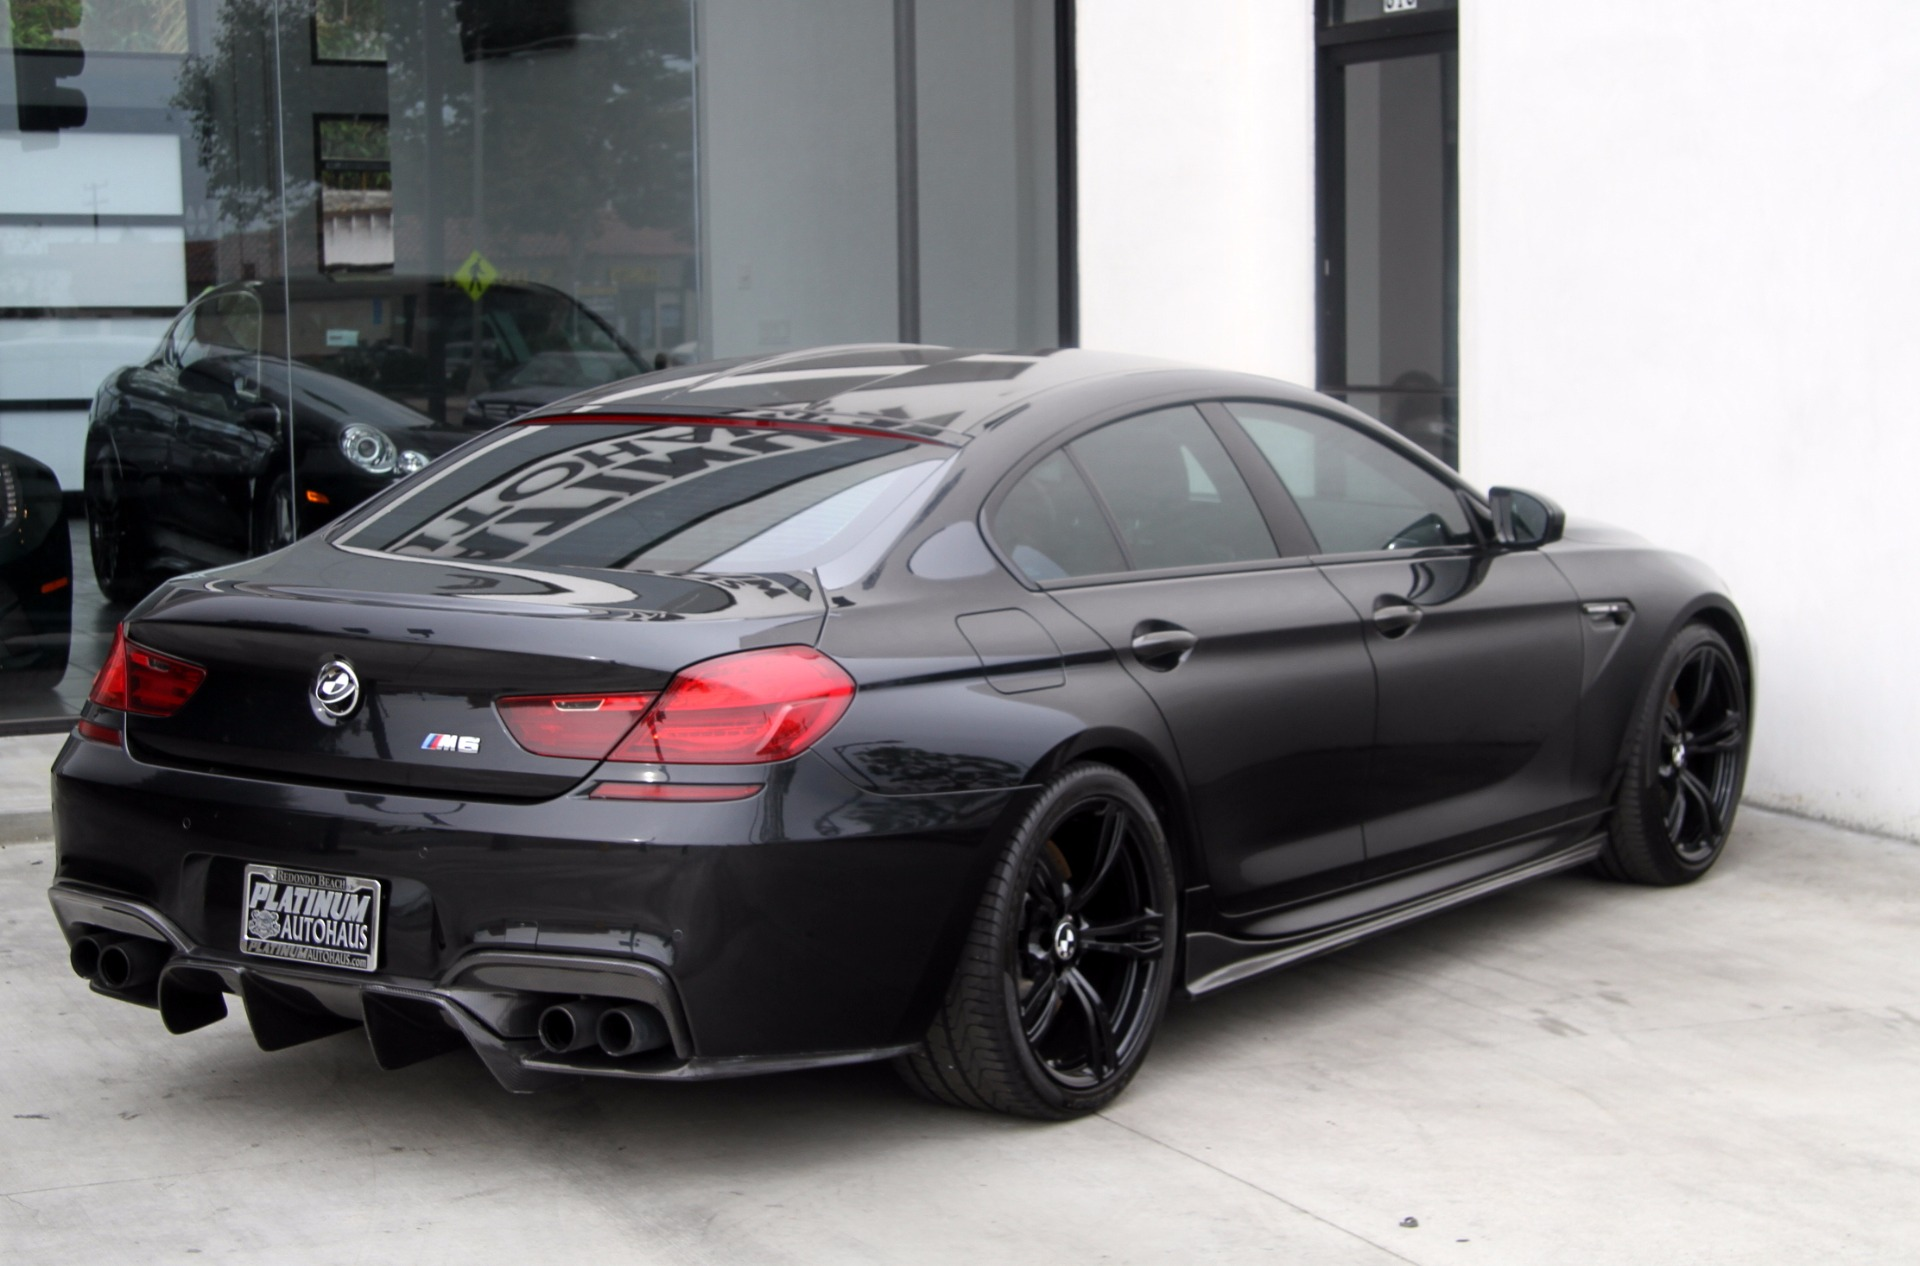 2014 Bmw M6 Rebuilt Salvage For Sale: 2014 BMW M6 Gran Coupe Stock # 5581 For Sale Near Redondo